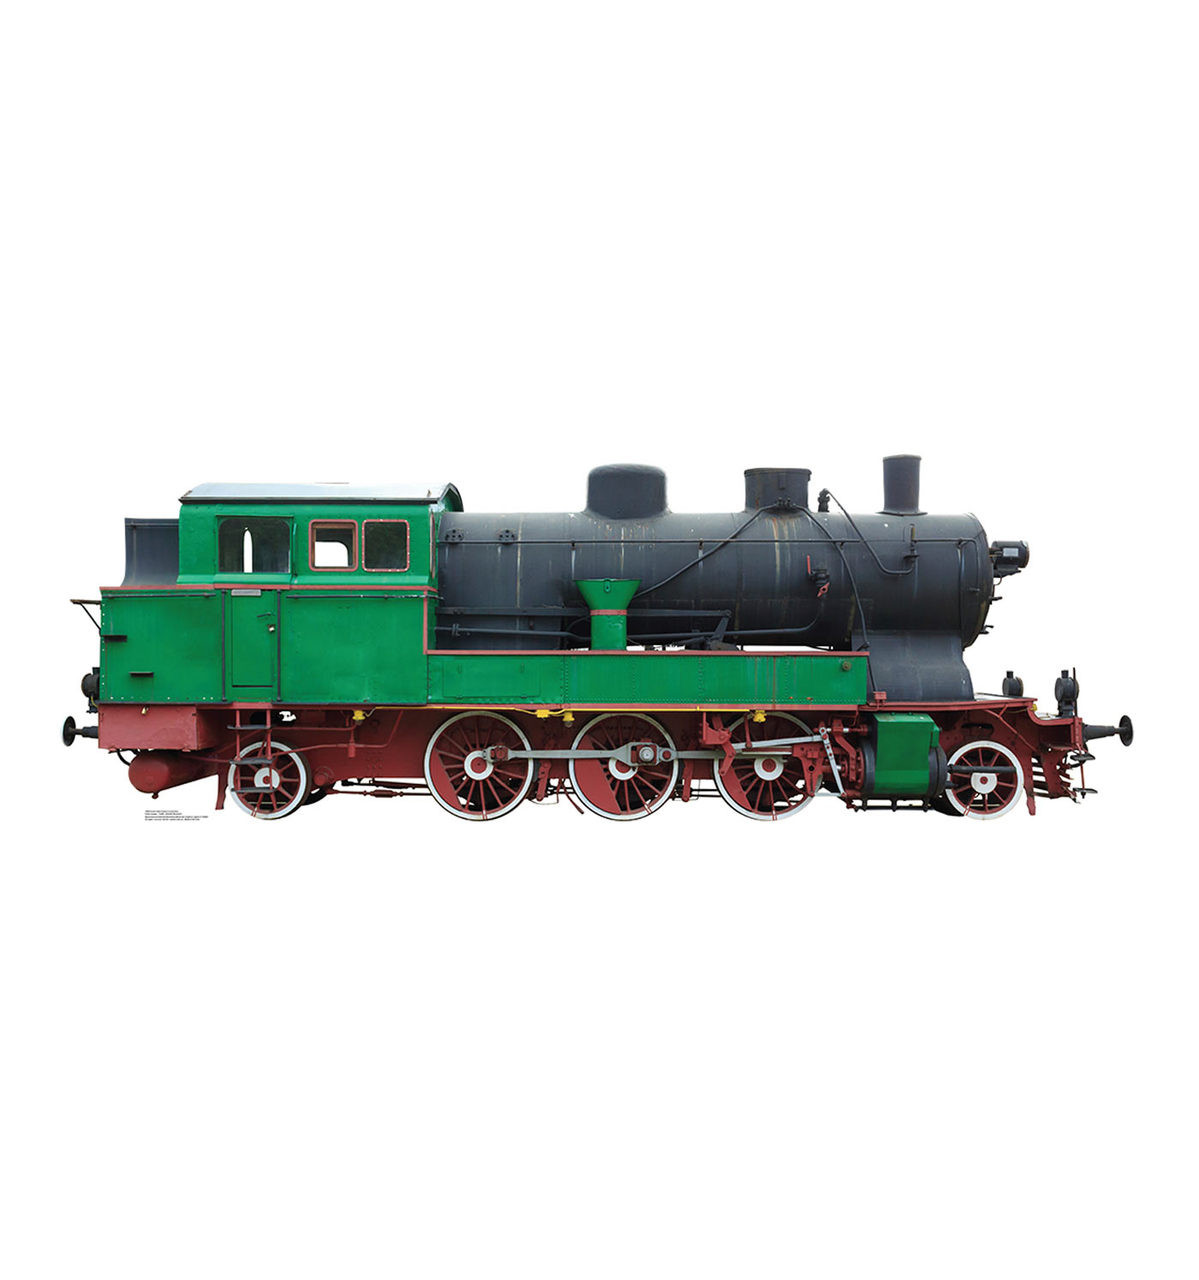 Life-size Green and Red Steam Locomotive Cardboard Standup   Cardboard Cutout